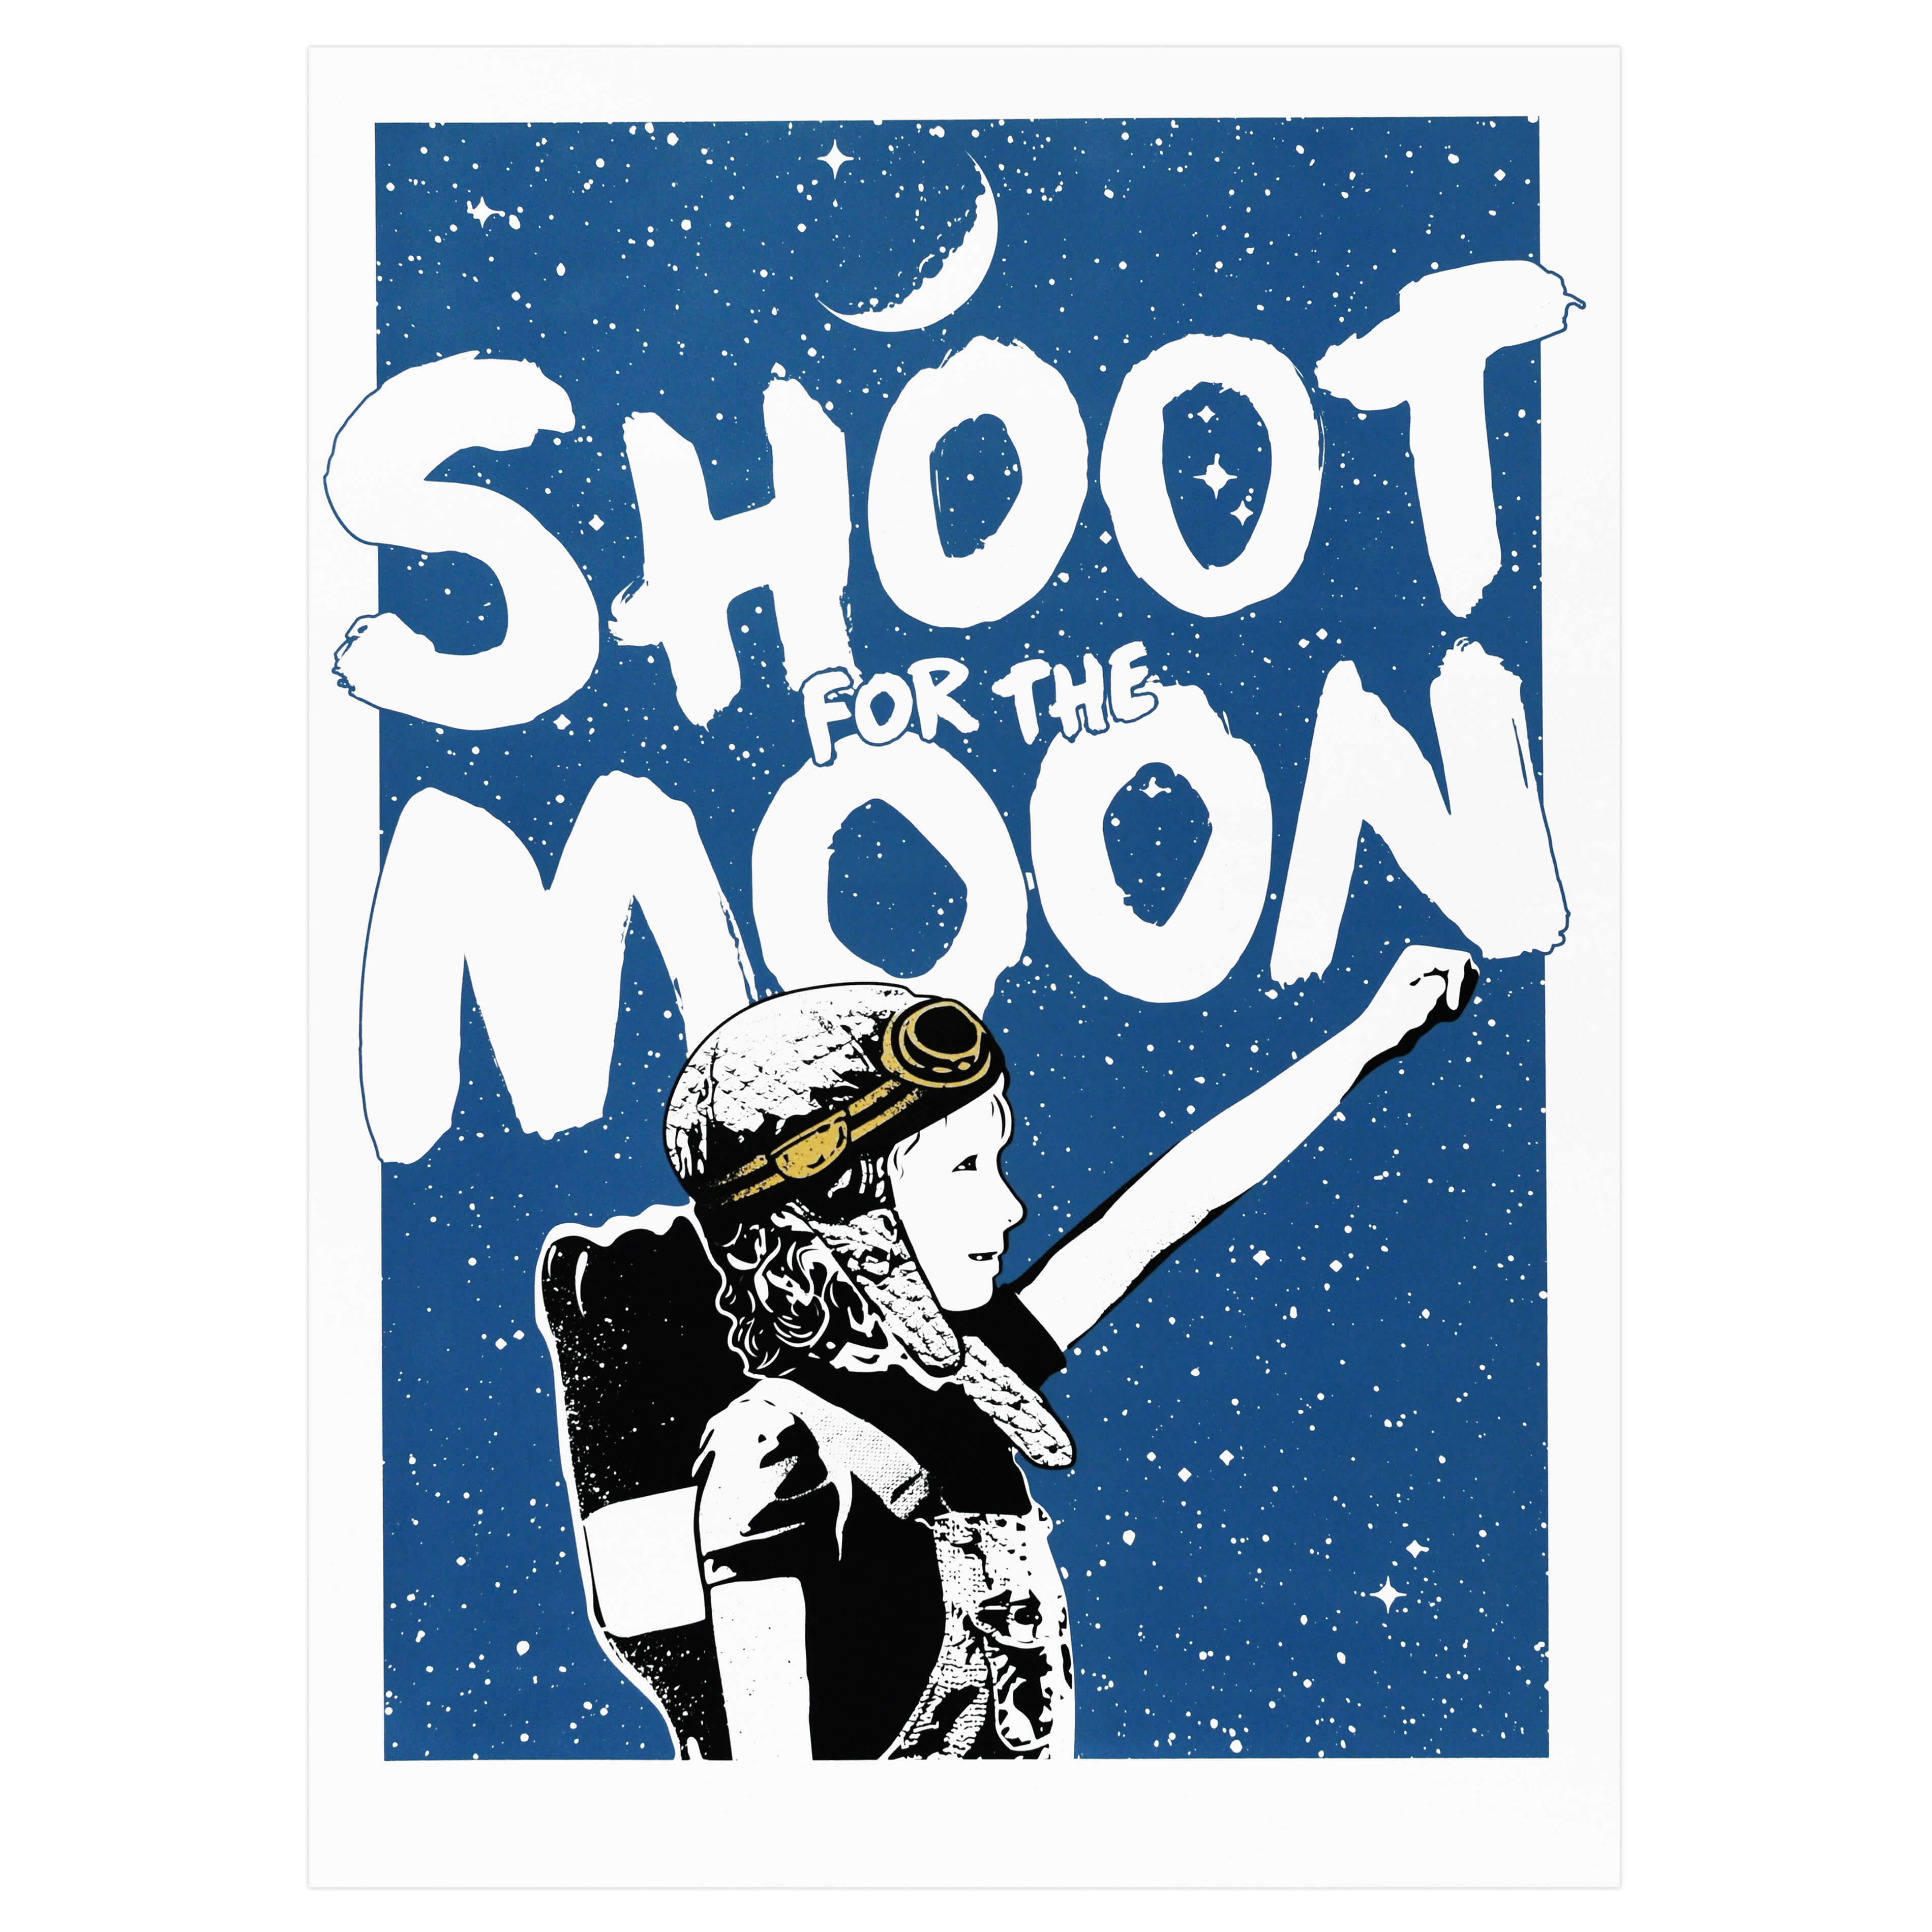 NME - Shoot For The Moon (Gold Edition) Print